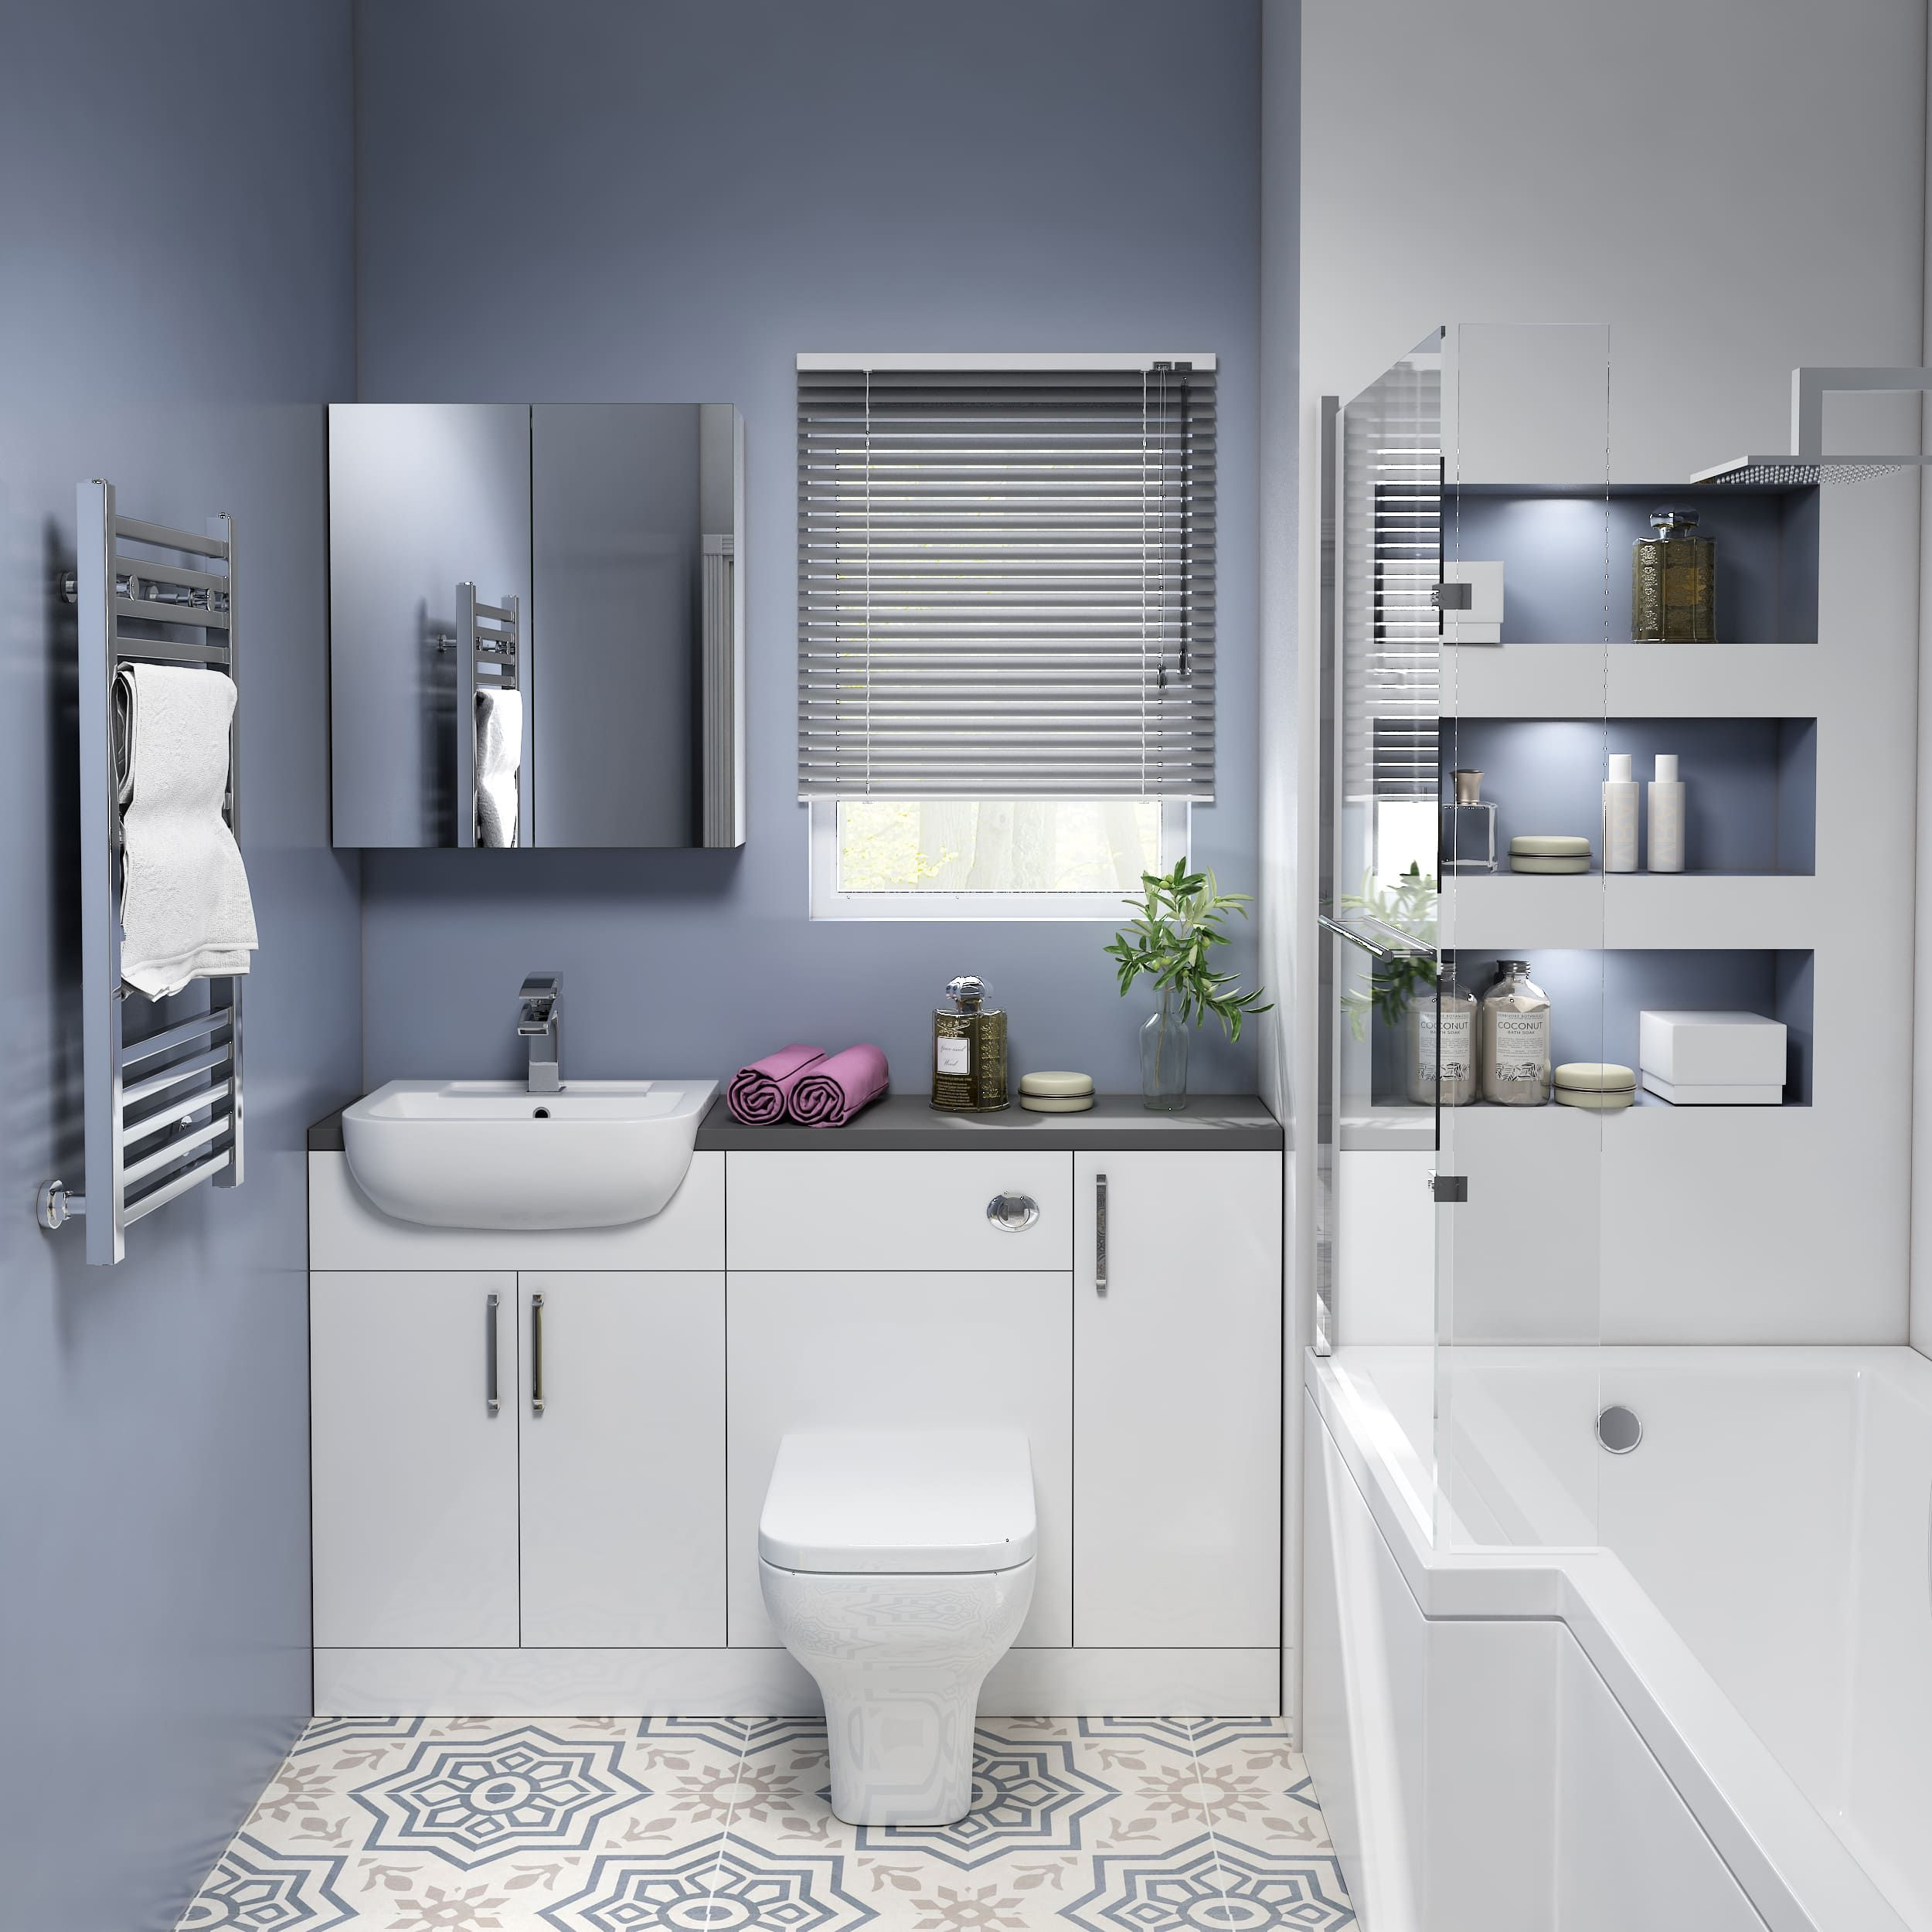 Oliver 1400 Fitted Bathroom Suite In 2020 Fitted Bathroom Toilet And Sink Set Fitted Furniture